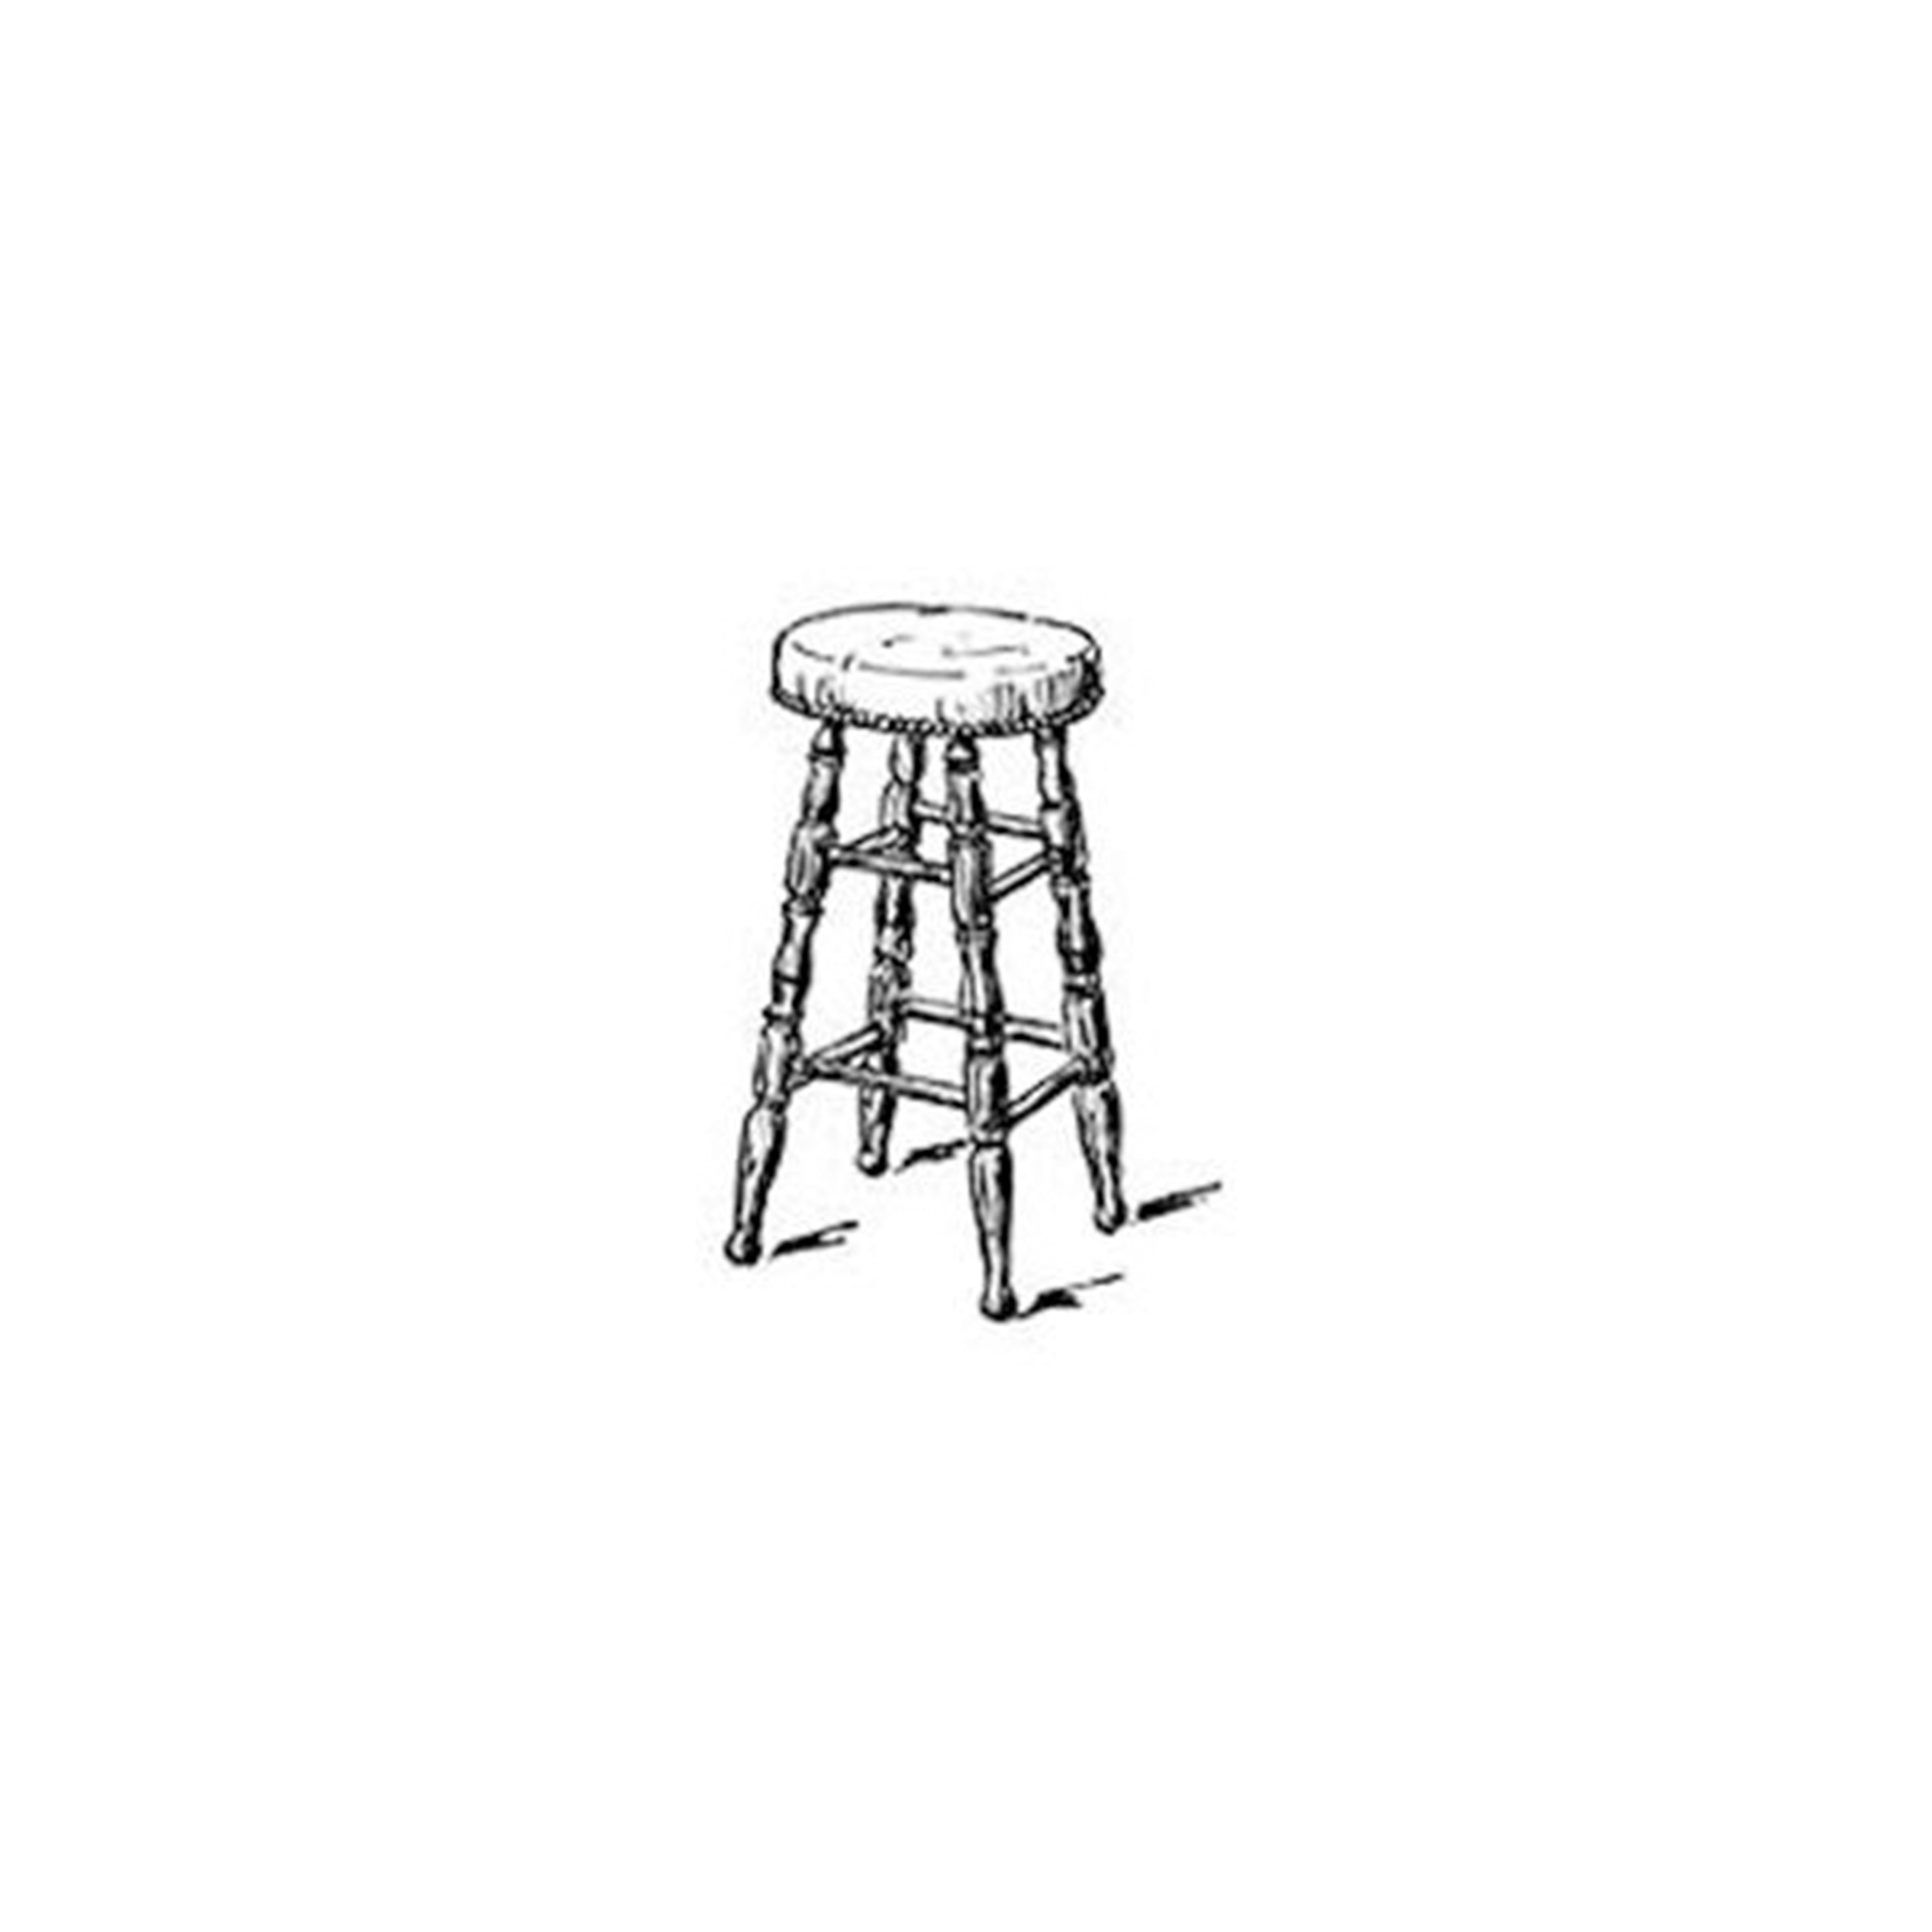 Woodworking Project Paper Plan to Build Bar Stool